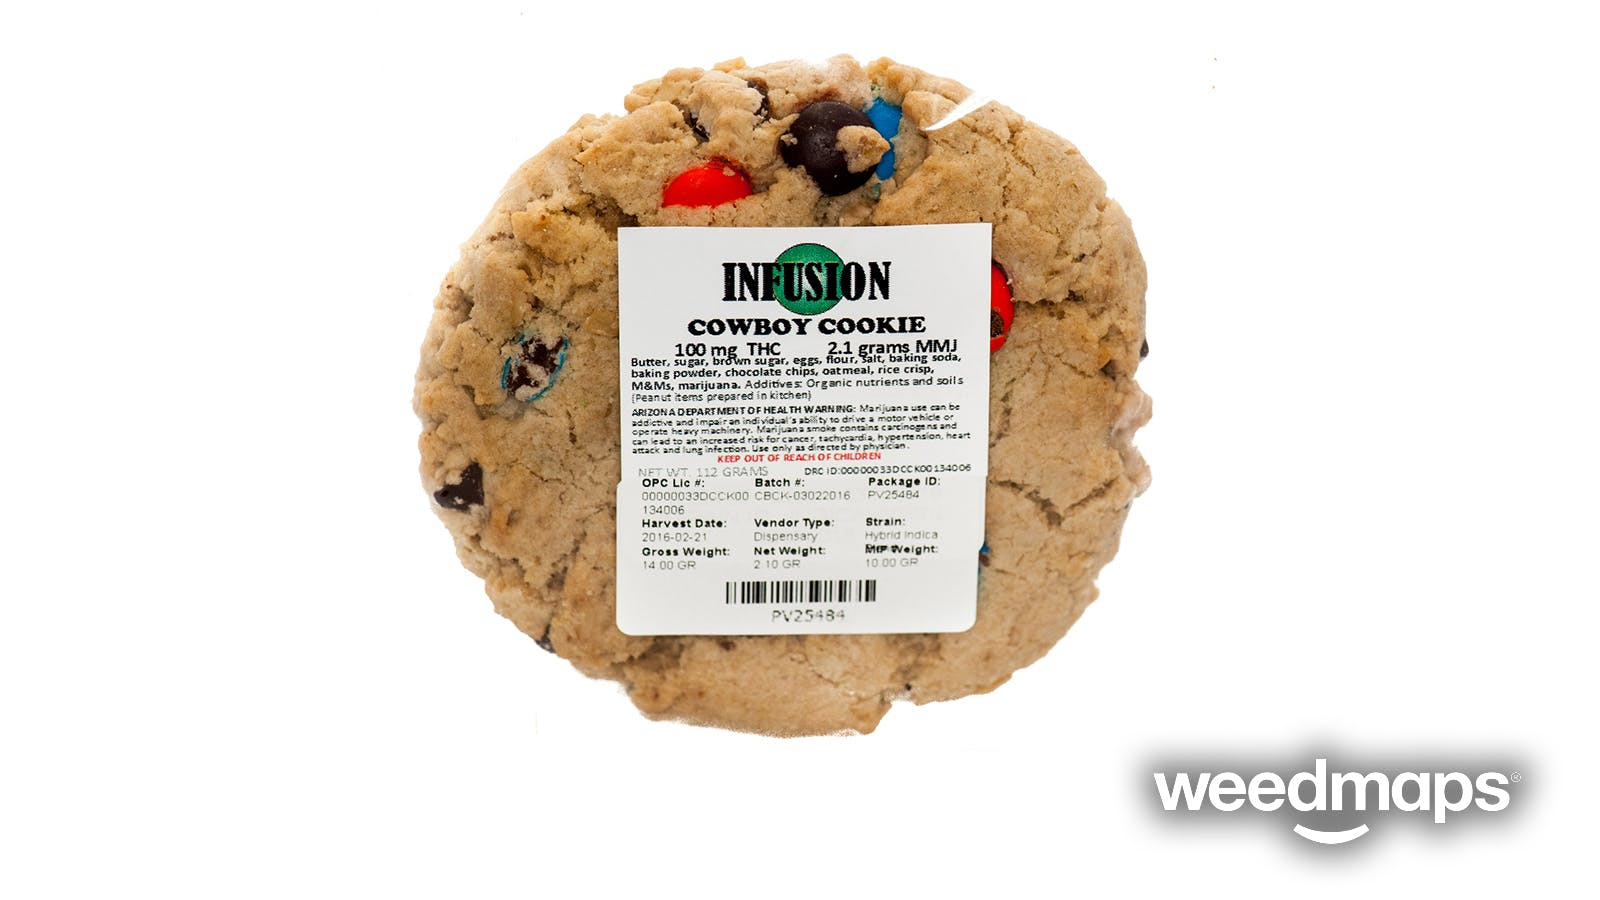 edible-infusion-100mg-cowboy-cookie